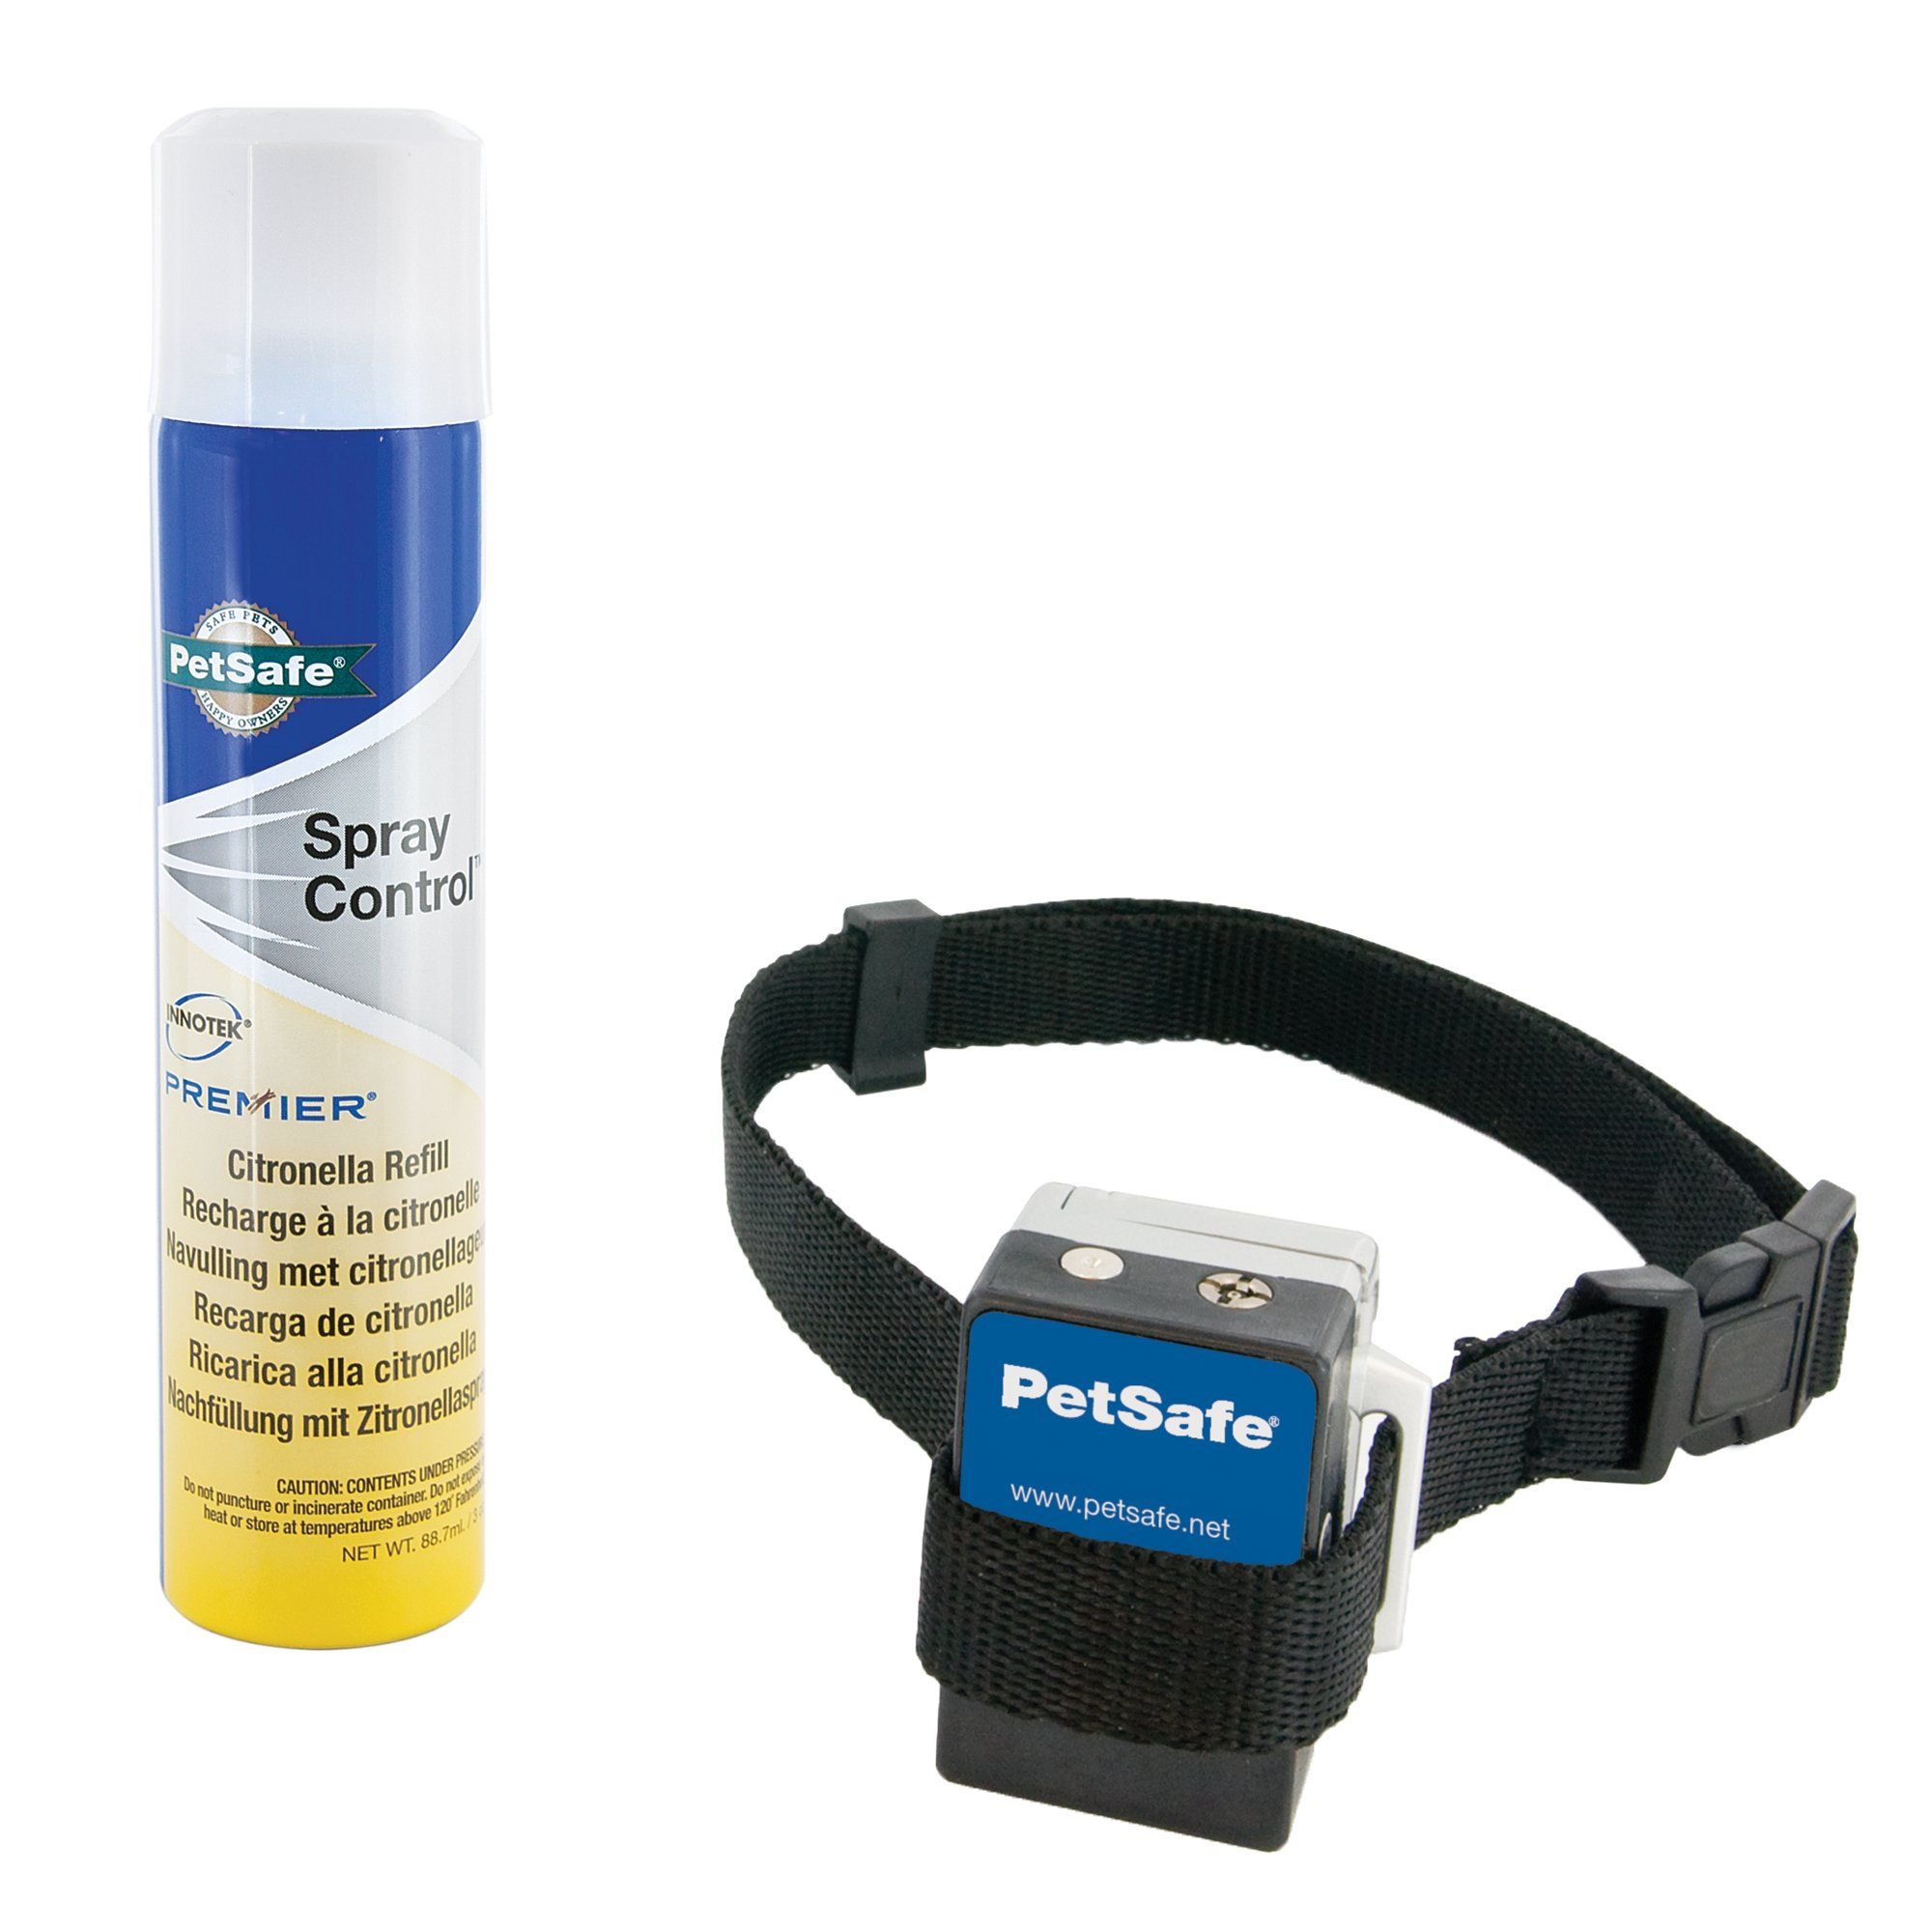 Petsafe Gentle Spray Bark Control Pet Training System Helps Stop Excessive Barking The Safe And Humane Way When Barking A Burs Pet Training Dog Spray Spray